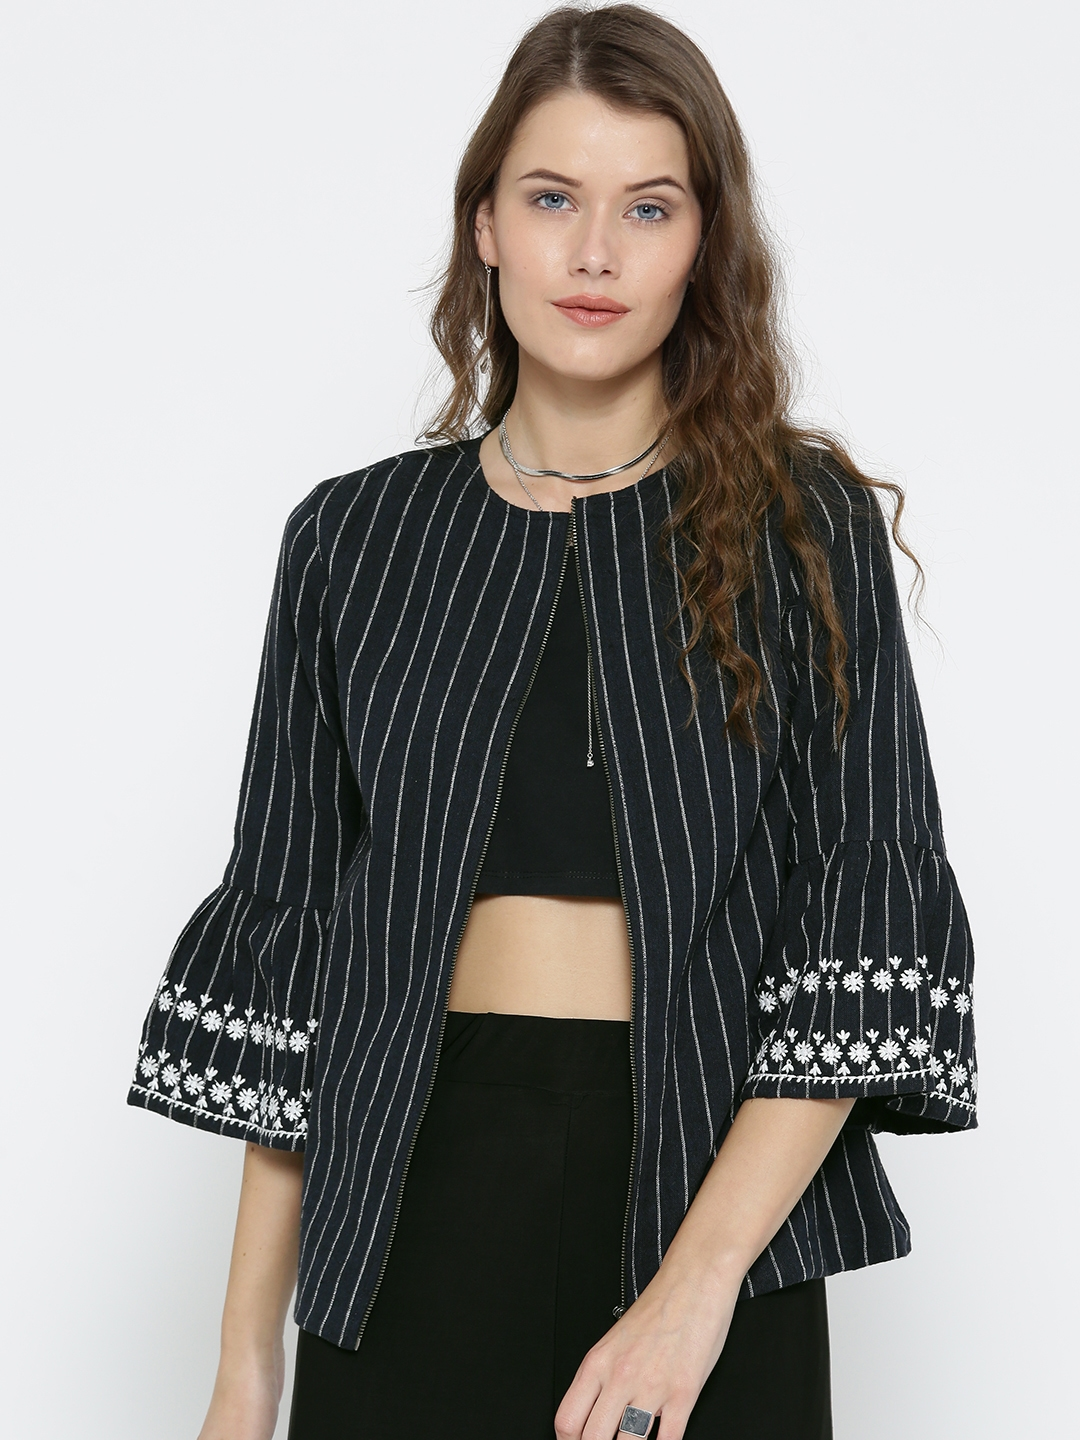 Buy SCOUP Women Navy Blue Striped Tailored Jacket - Jackets for ... 7c8551fcd